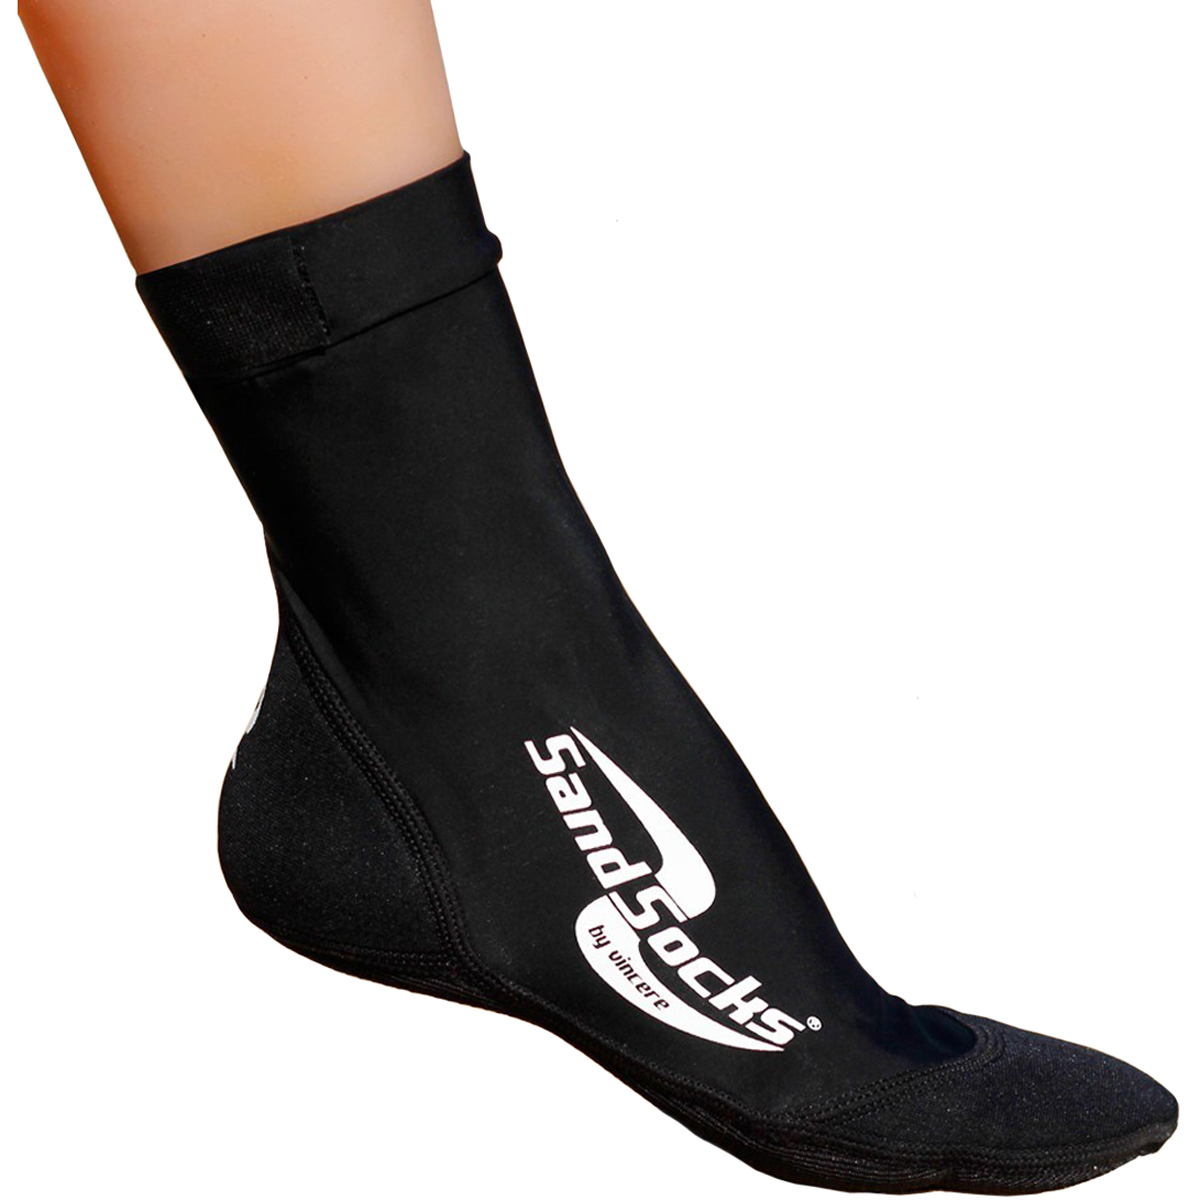 Sand Socks Classic High Top Neoprene Athletic Socks - Black